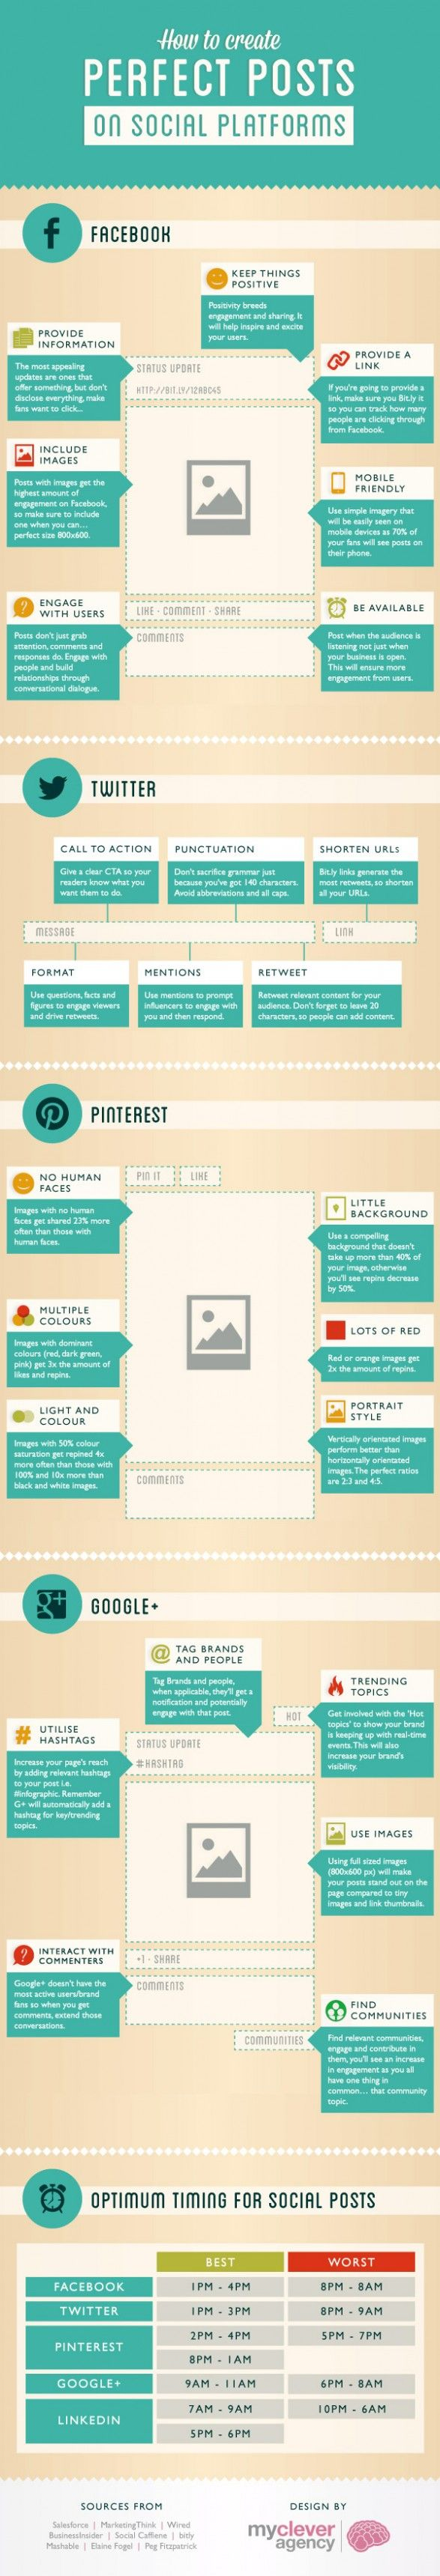 How You Can Create the Perfect Posts for Social Platforms